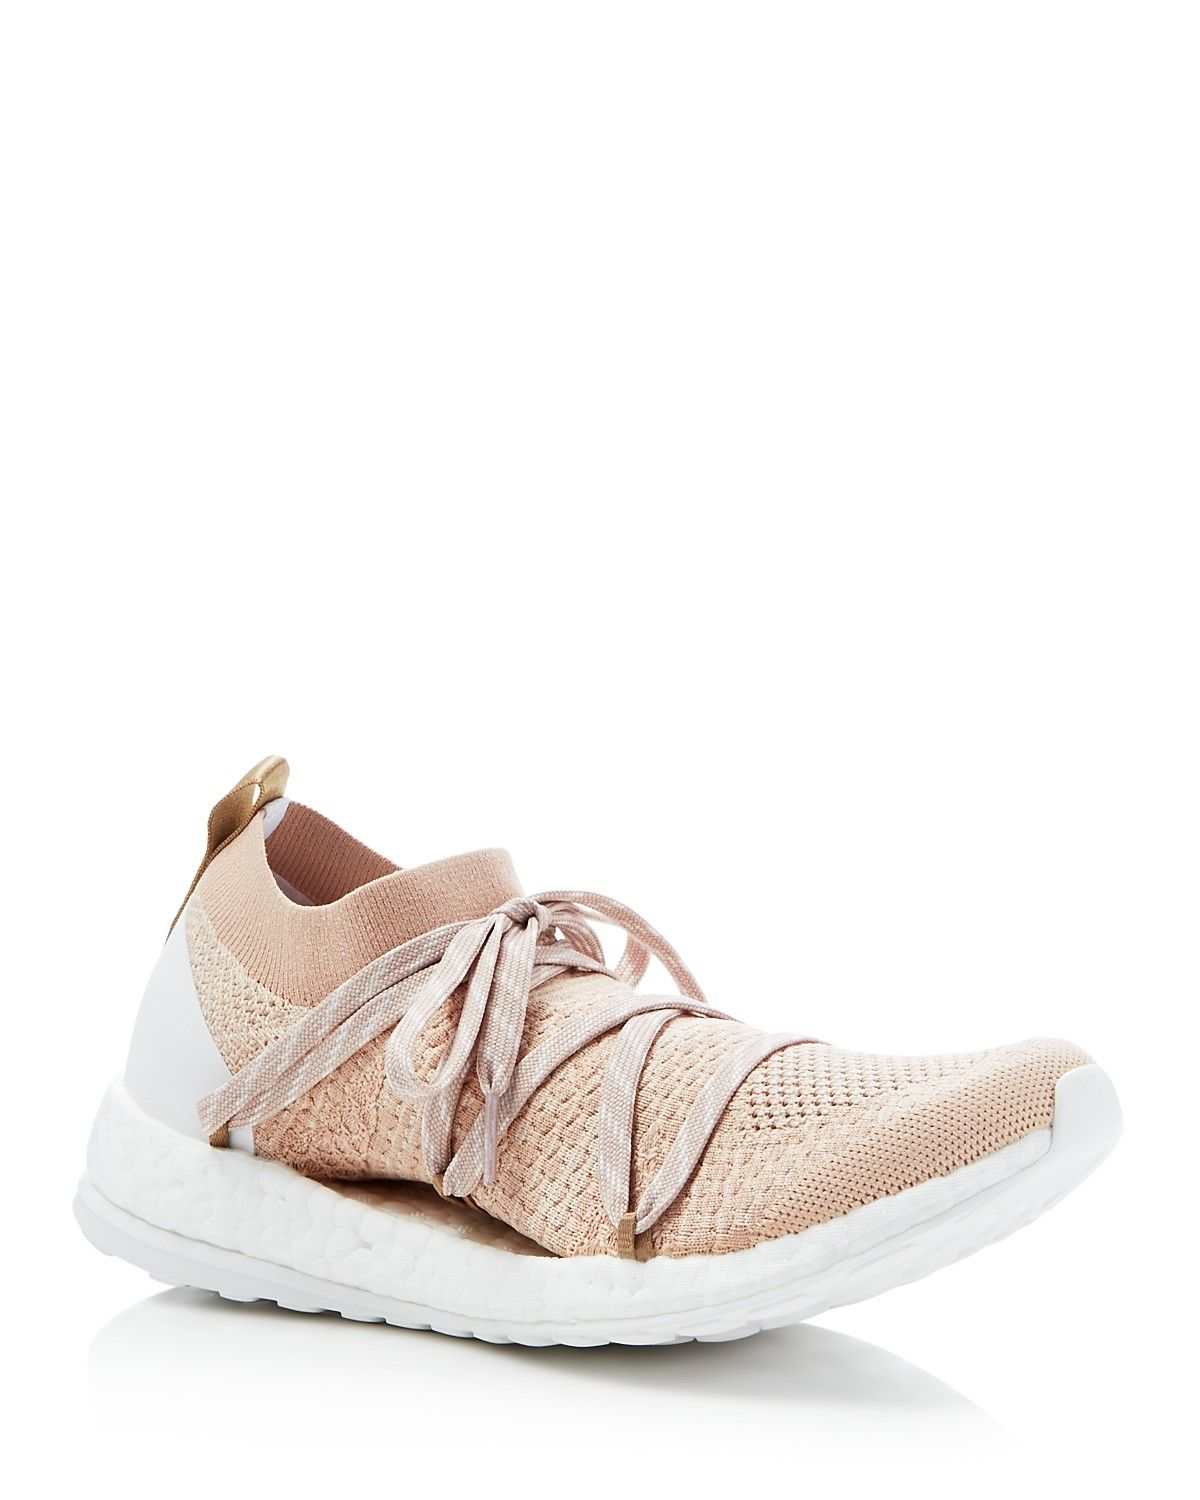 adidas by stella mccartney pure boost x lace up sneakers fall winter pinterest pure boost. Black Bedroom Furniture Sets. Home Design Ideas